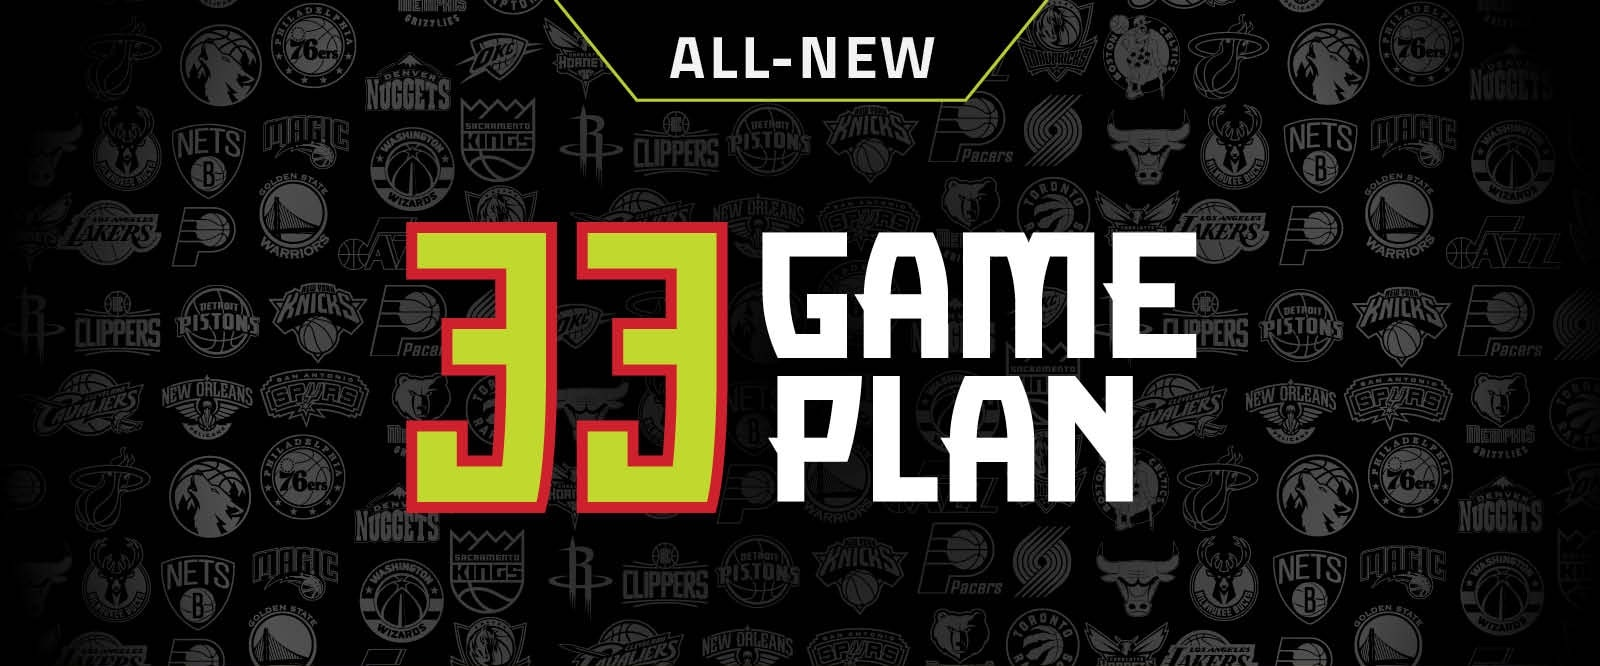 Get your new 33-game plan now!